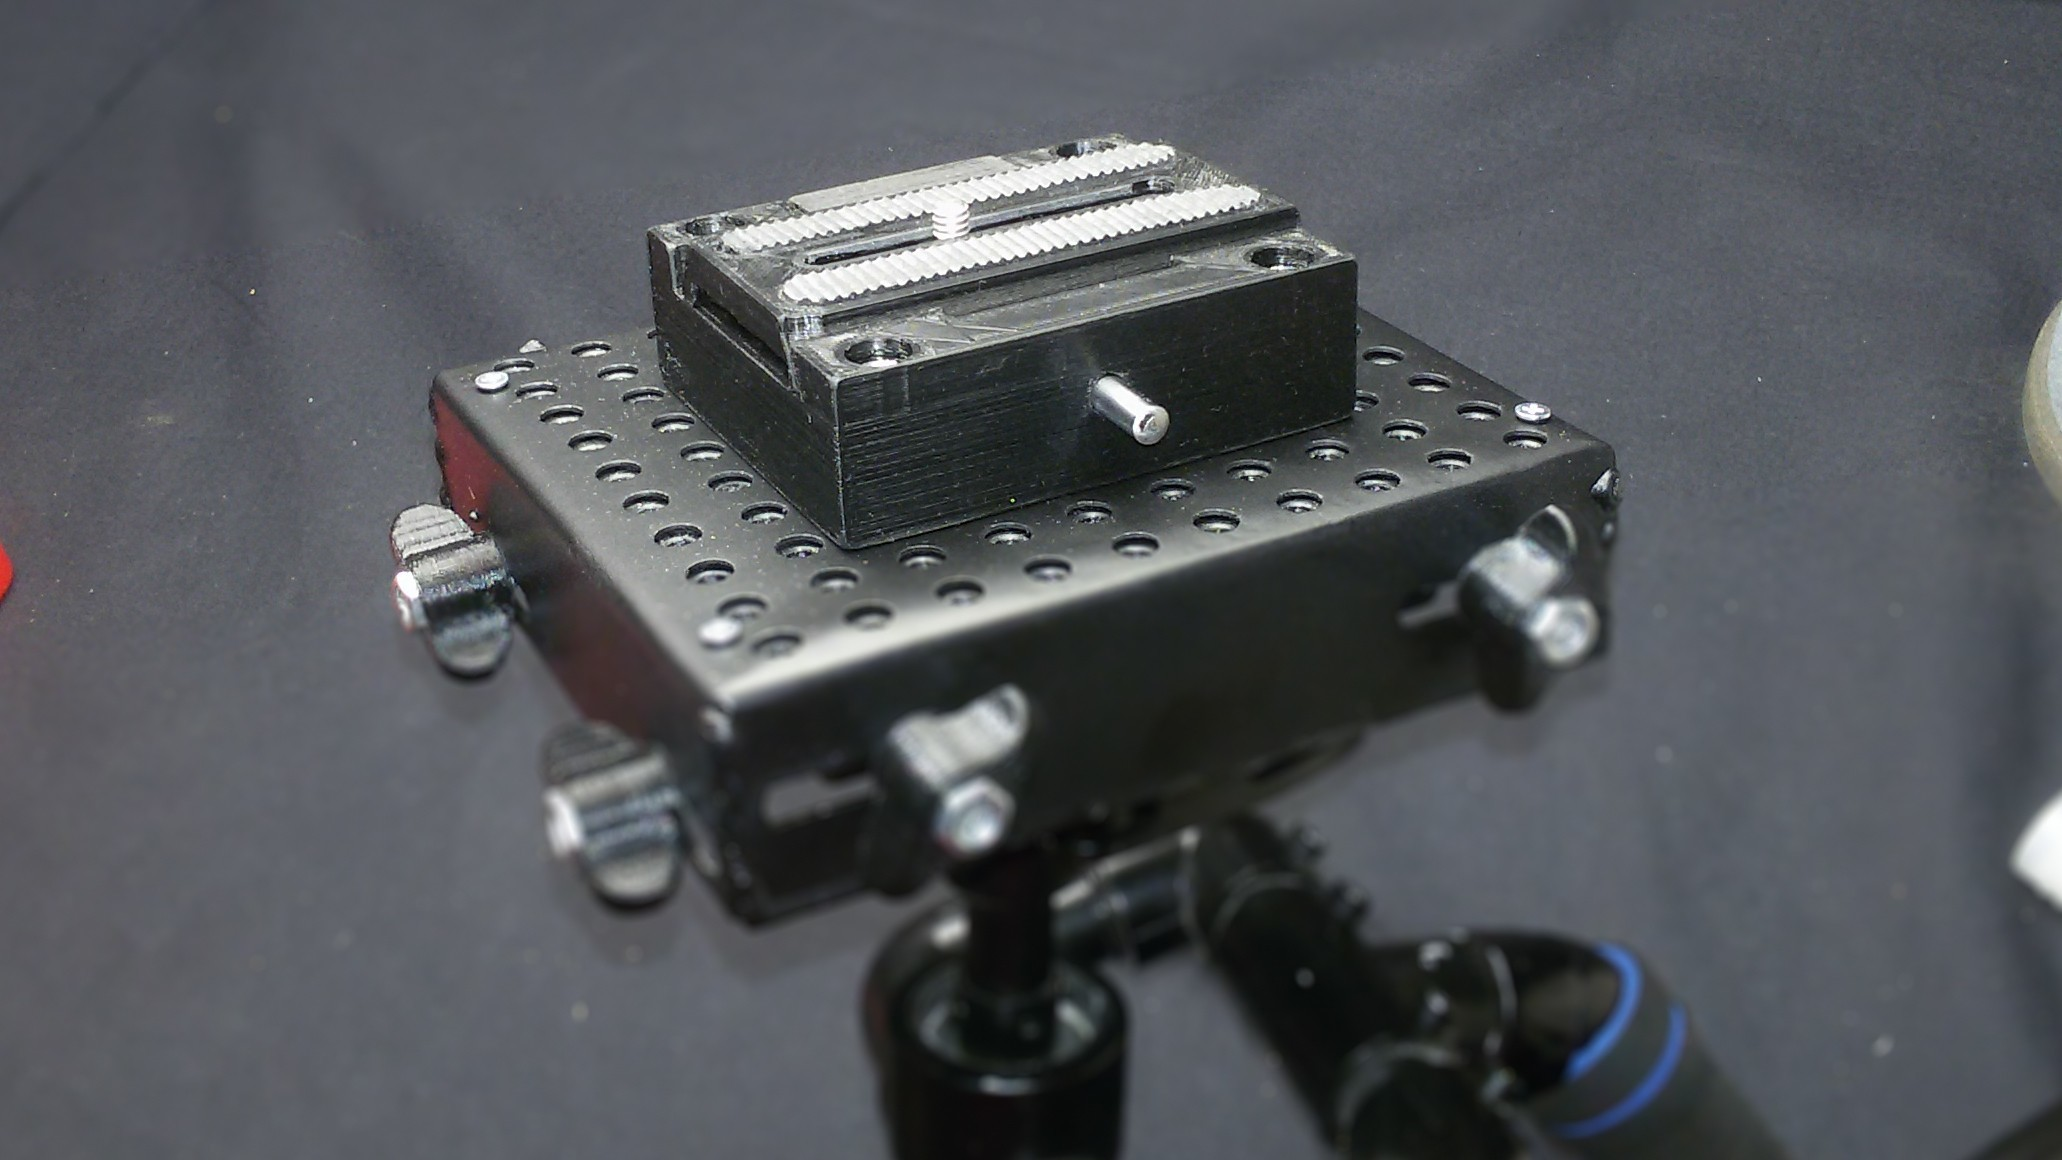 20190121_004431.jpg Download free STL file Quick Release Adapter (Manfrotto style) with Sliding Plate (501PL)  for steadycam / tripod / monopod • 3D print model, AleksandrDolzhenko